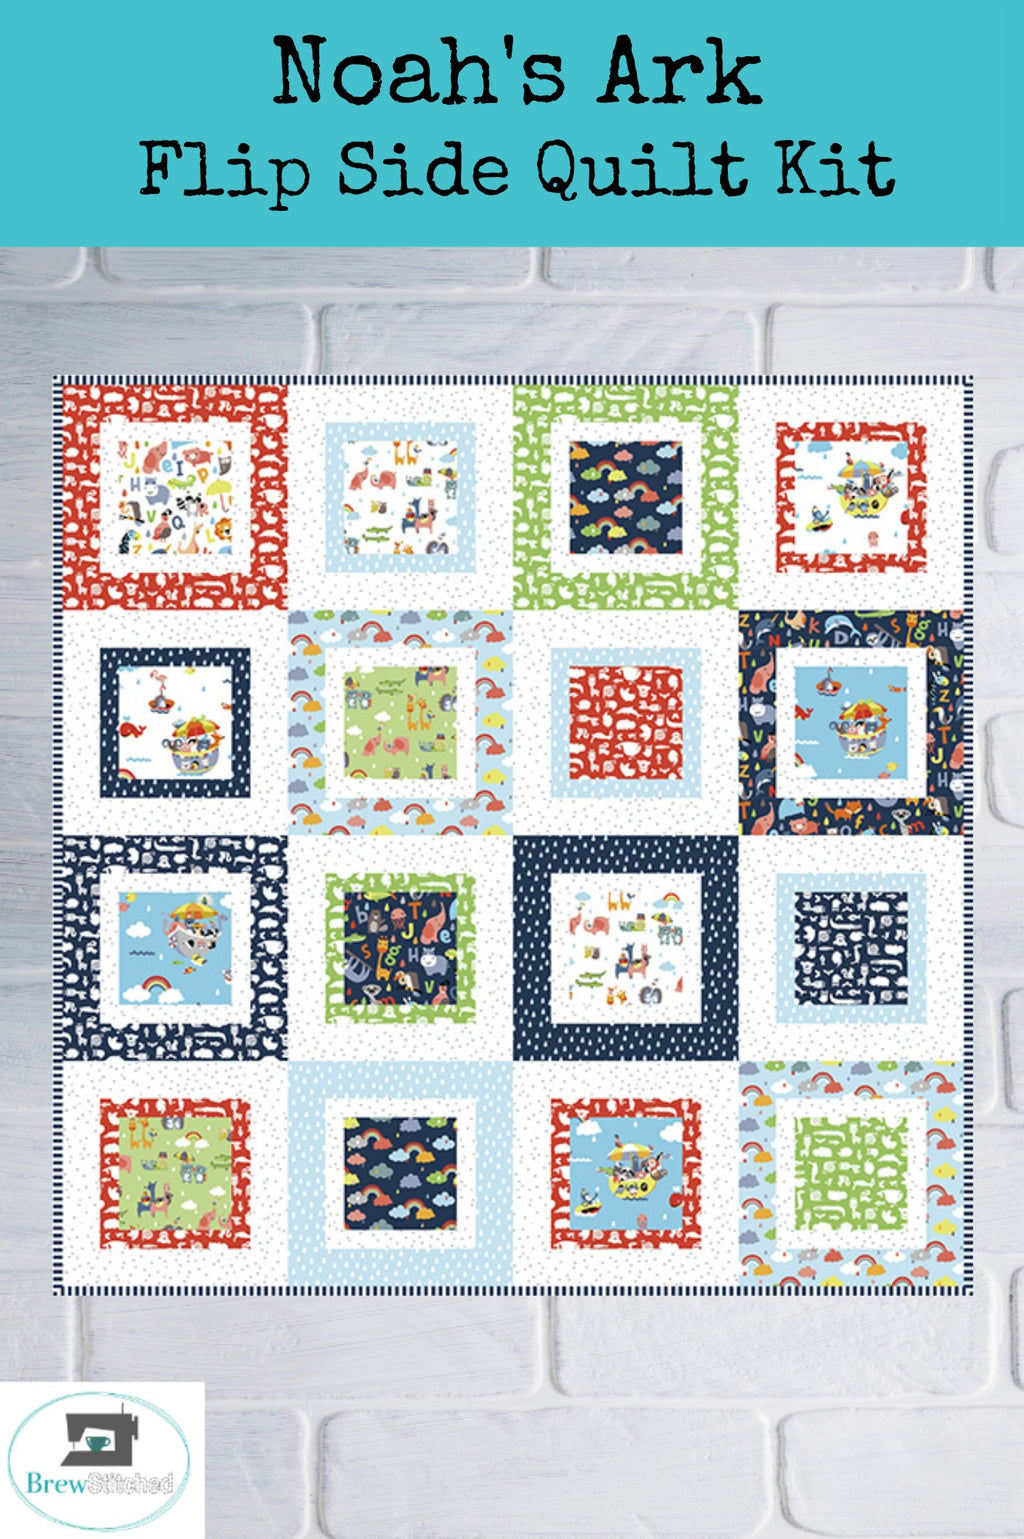 Noah's Ark Flip Side Quilt Kit - brewstitched.com